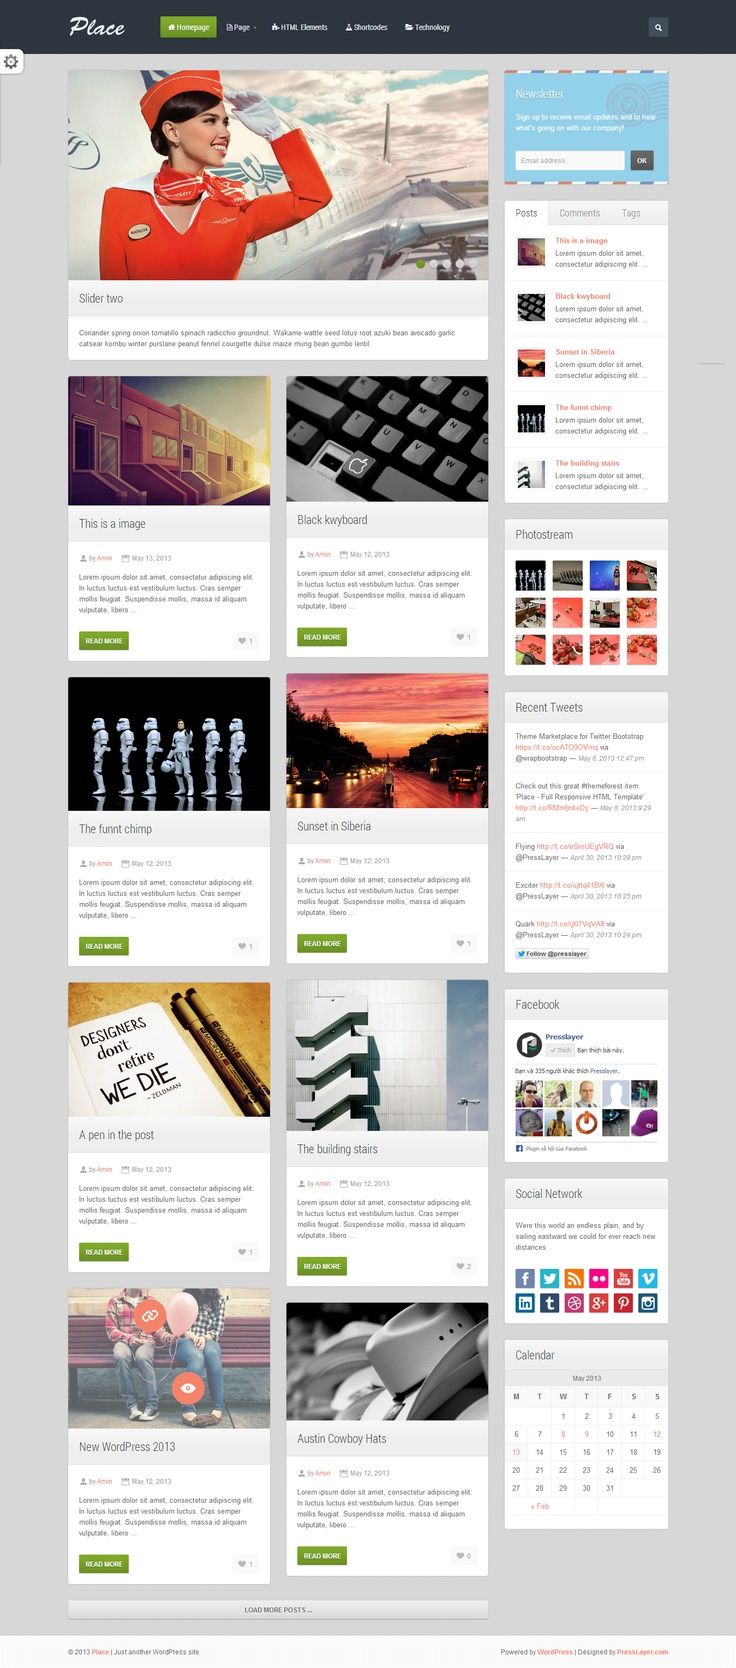 Place - Responsive Blogging WordPress Theme #wordpress #theme #website #template #responsive #design #webdesign #flat #blog #magazine #creative